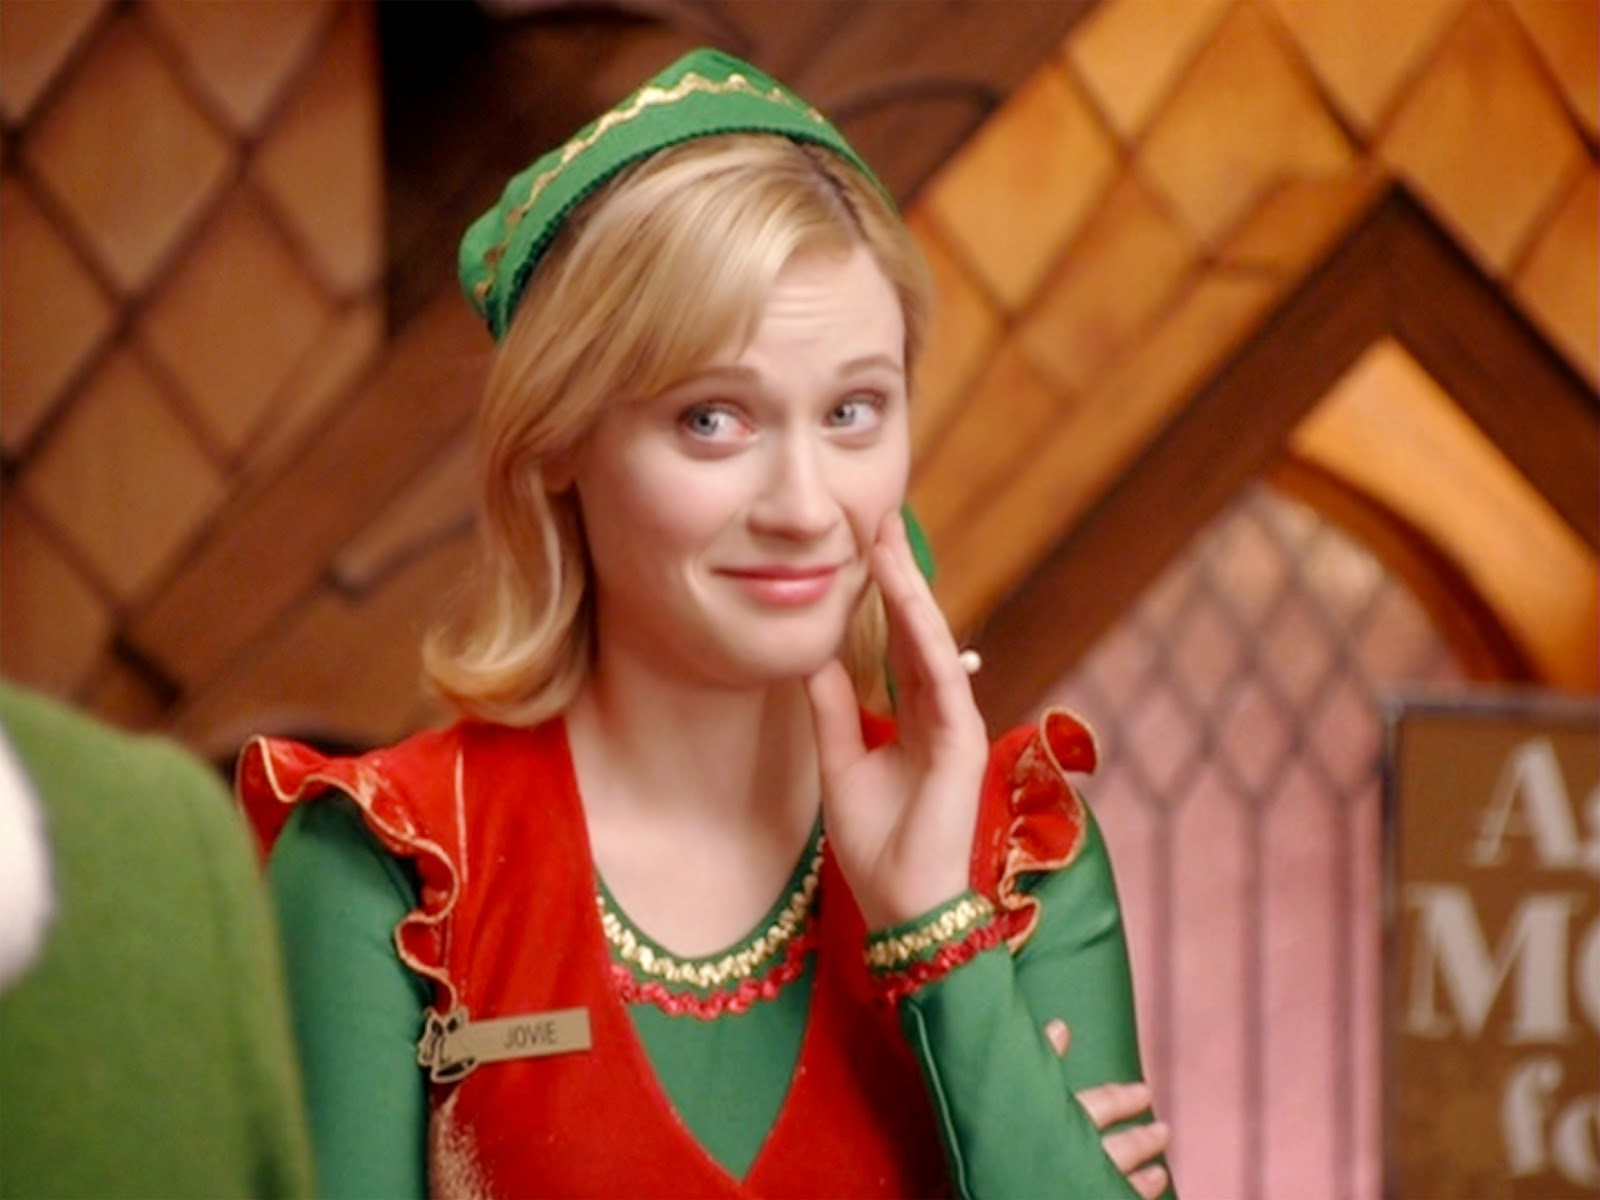 If you love the holidays, then you're going to love these 14 baby names even more